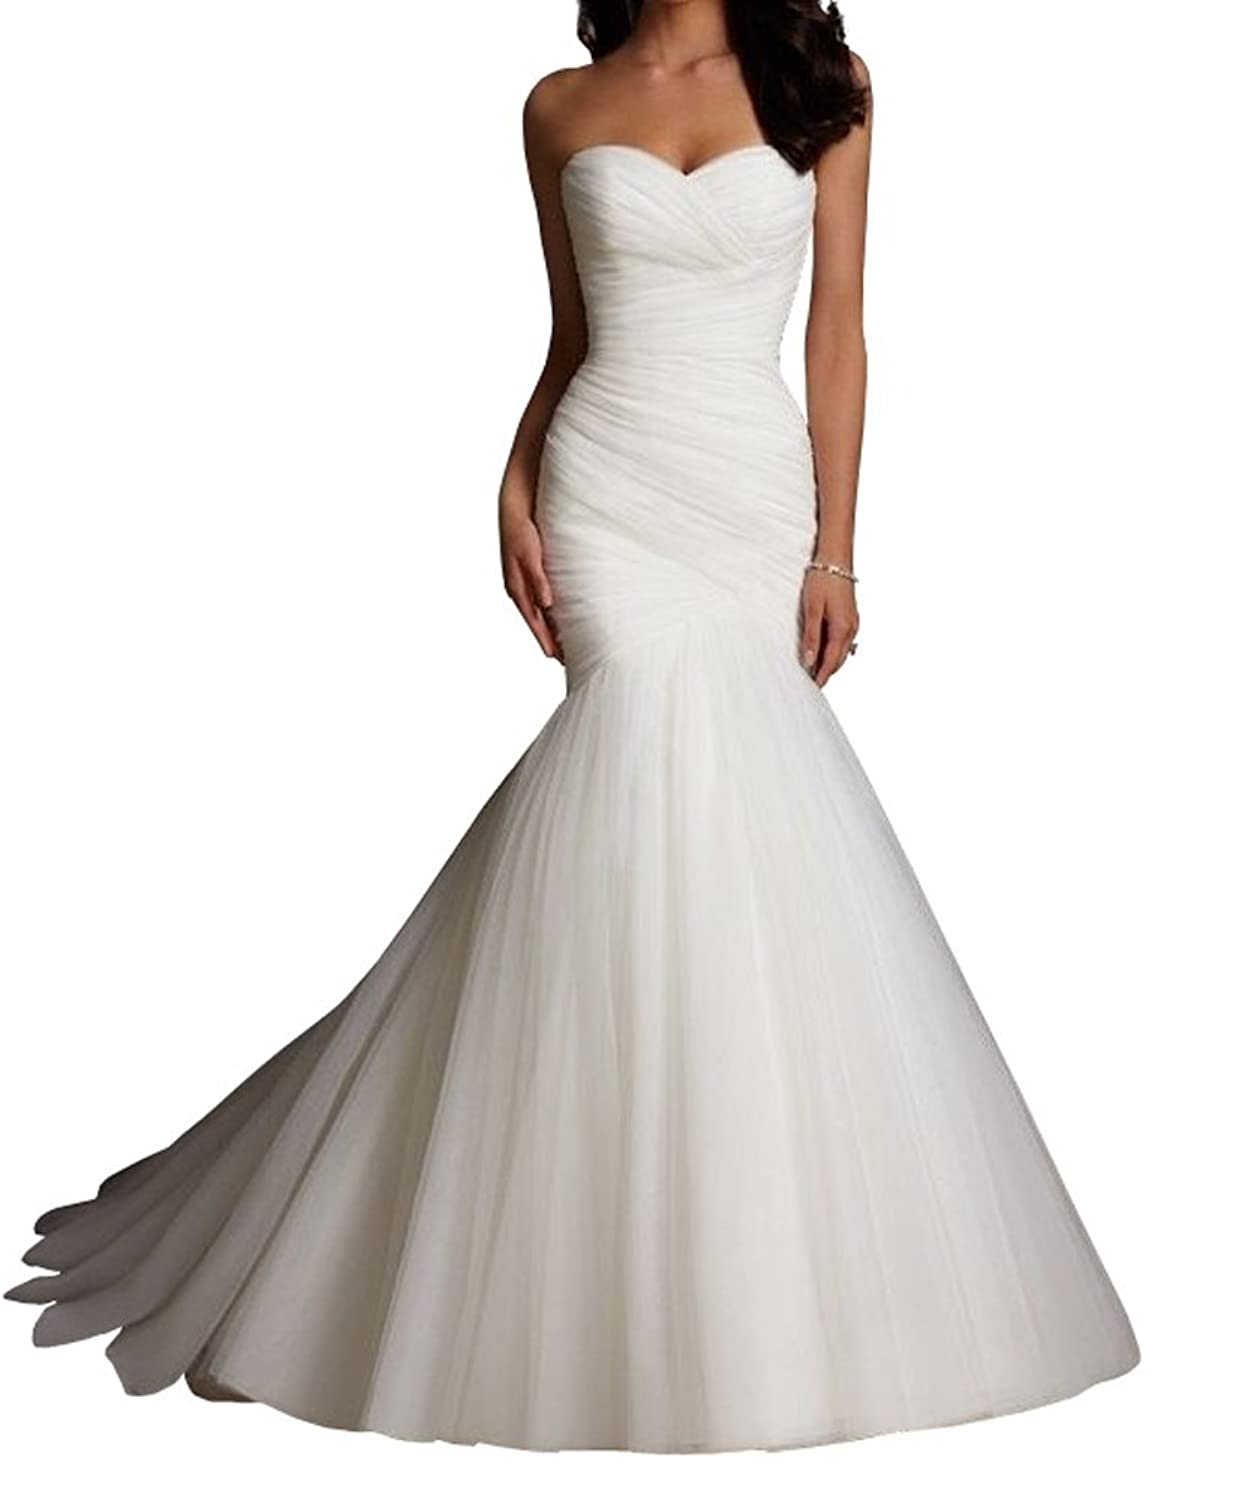 New Modern Wedding Dresses Wedding Dresses For Sale On Amazon